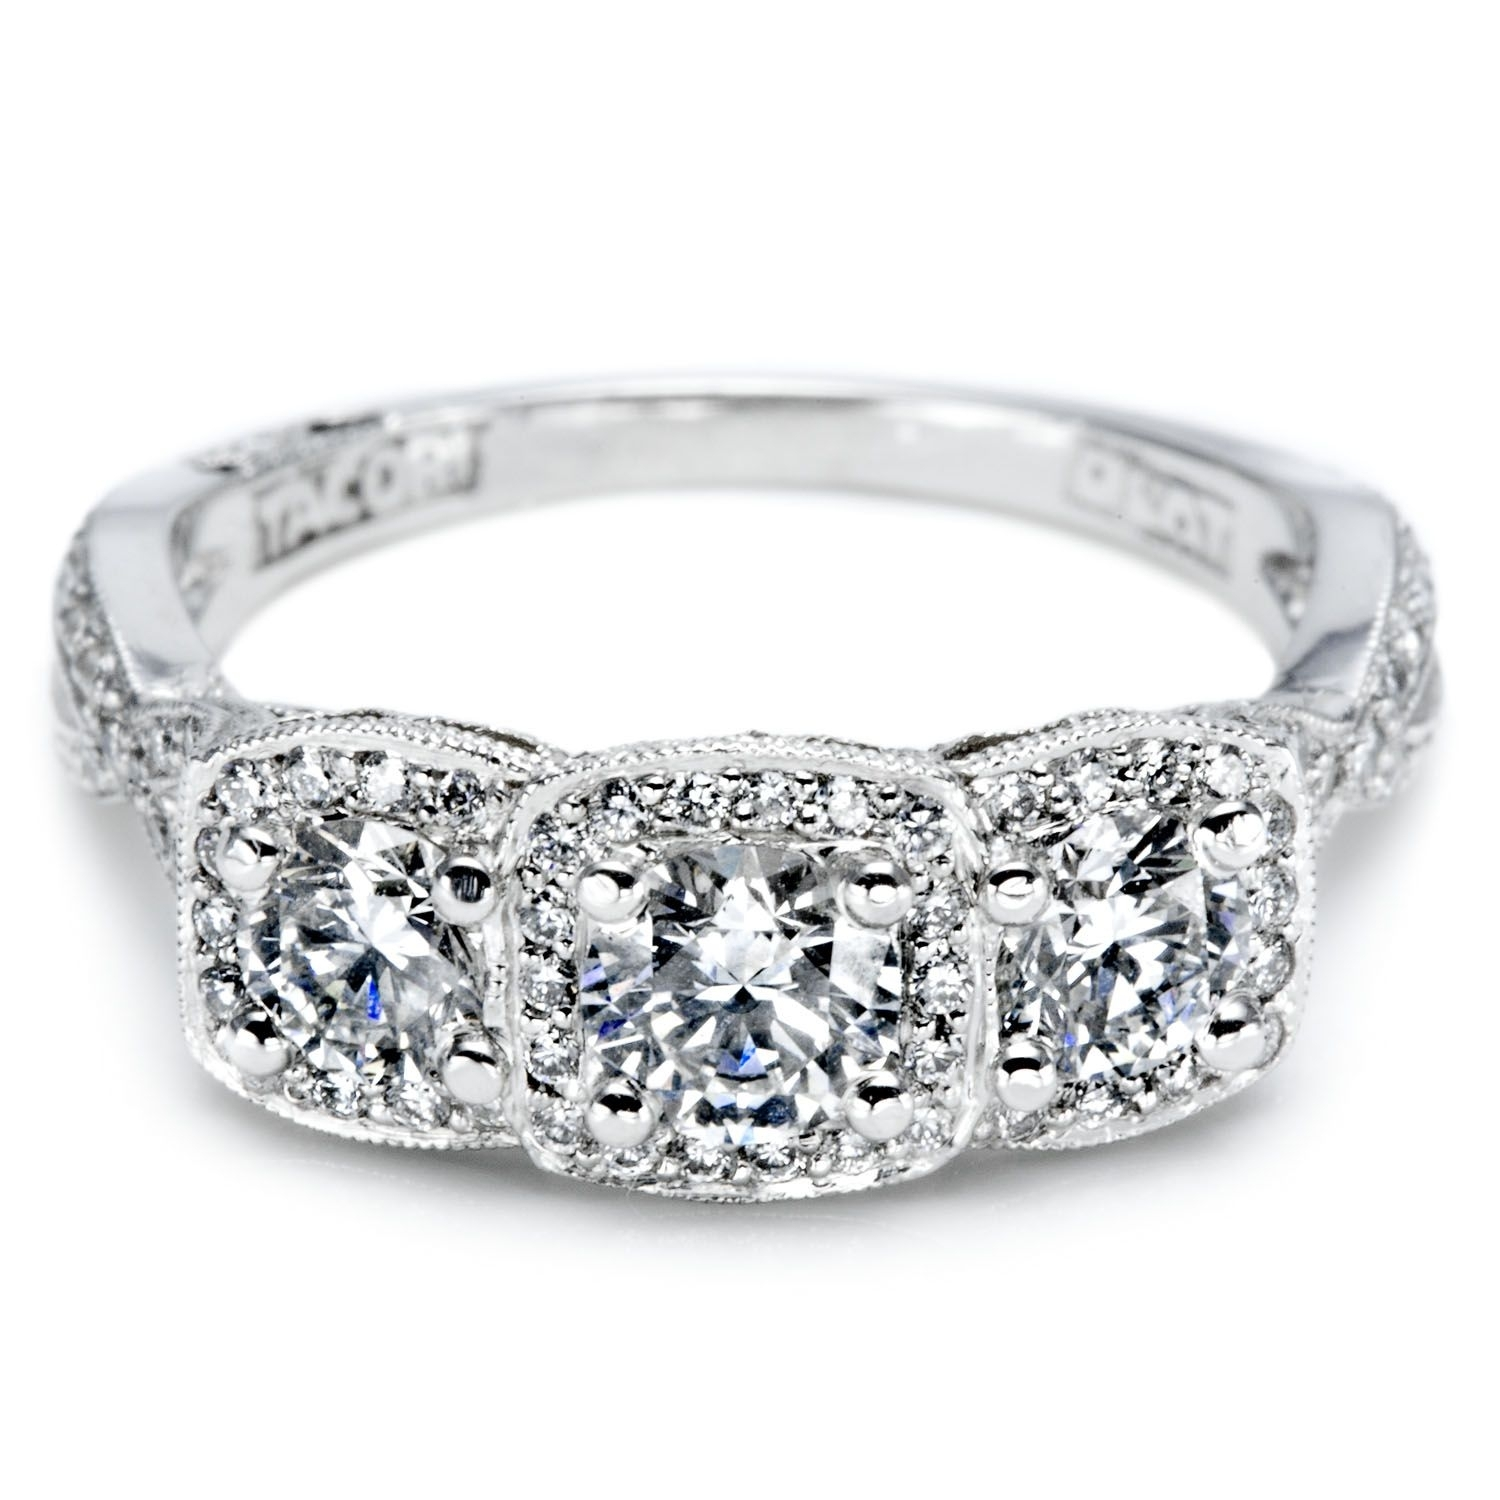 Unique Diamond Anniversary Rings | View Some Examples Of Different Regarding Most Recent Diamond Four Row Anniversary Bands In Sterling Silver (View 14 of 15)